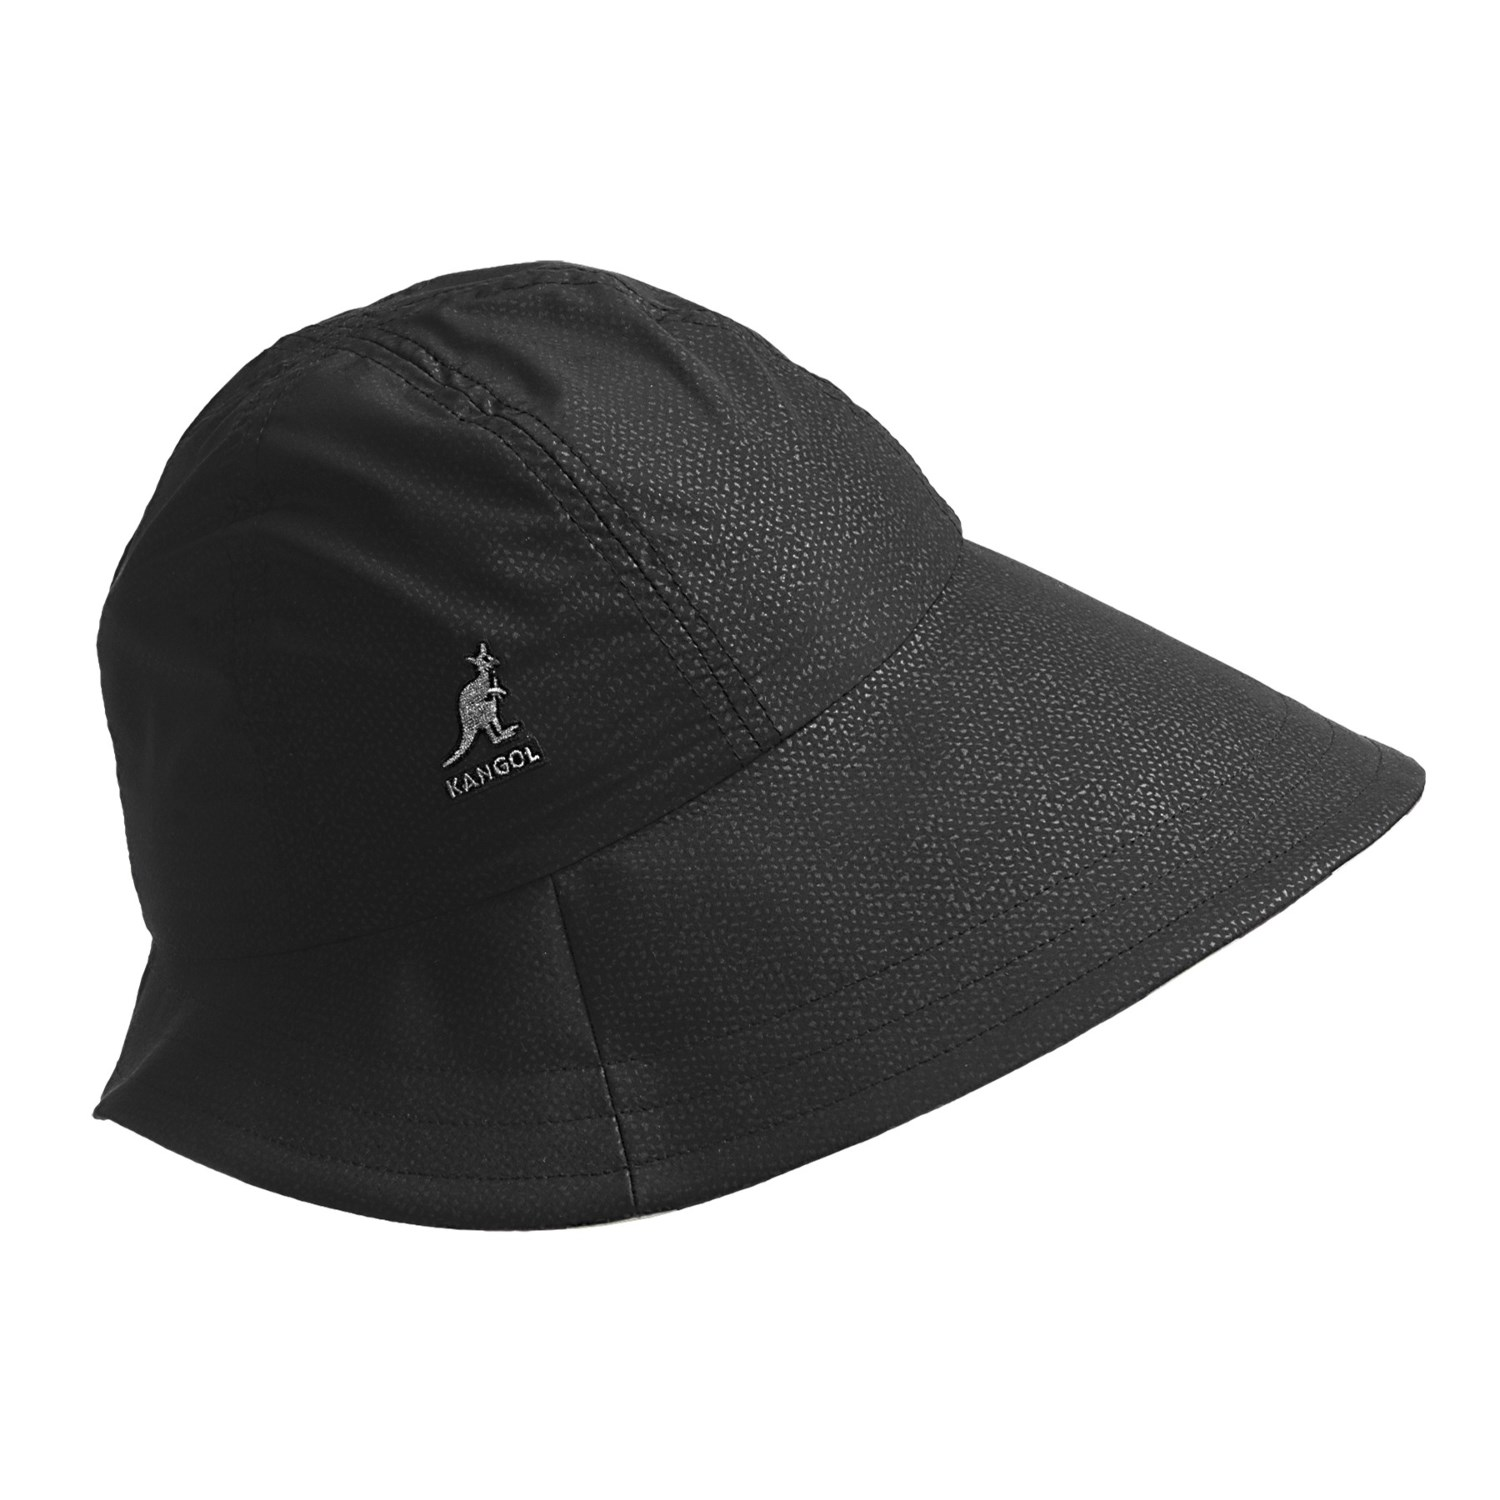 kangol golf cloche hat crushable for in black